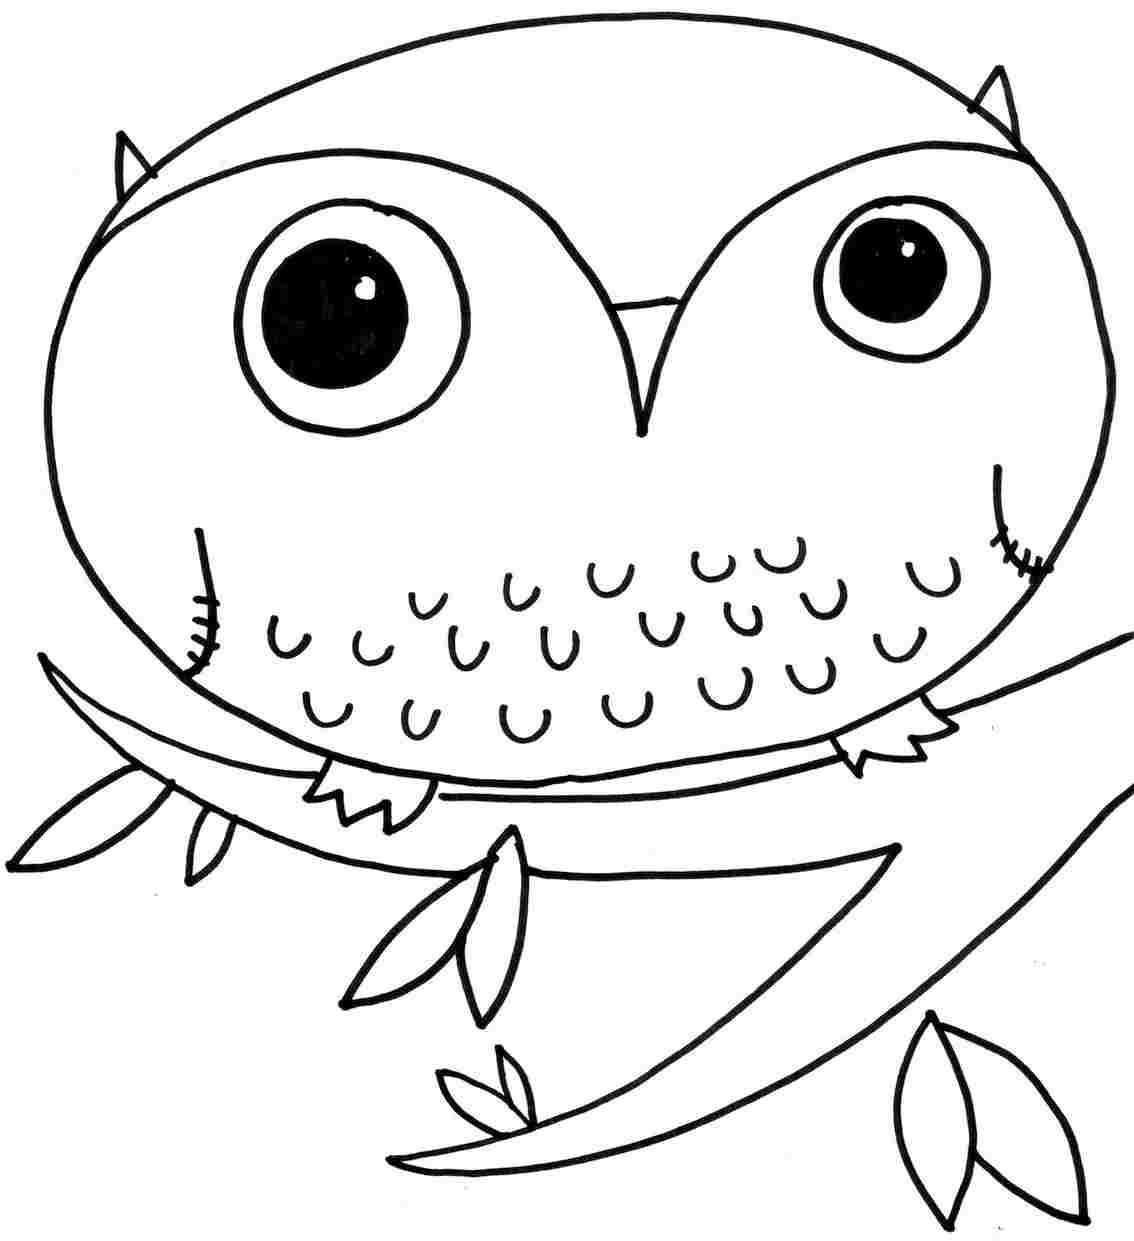 owl coloring pages printable free free online printable coloring pages sheets for kids get the latest free owl coloring pages printable free images